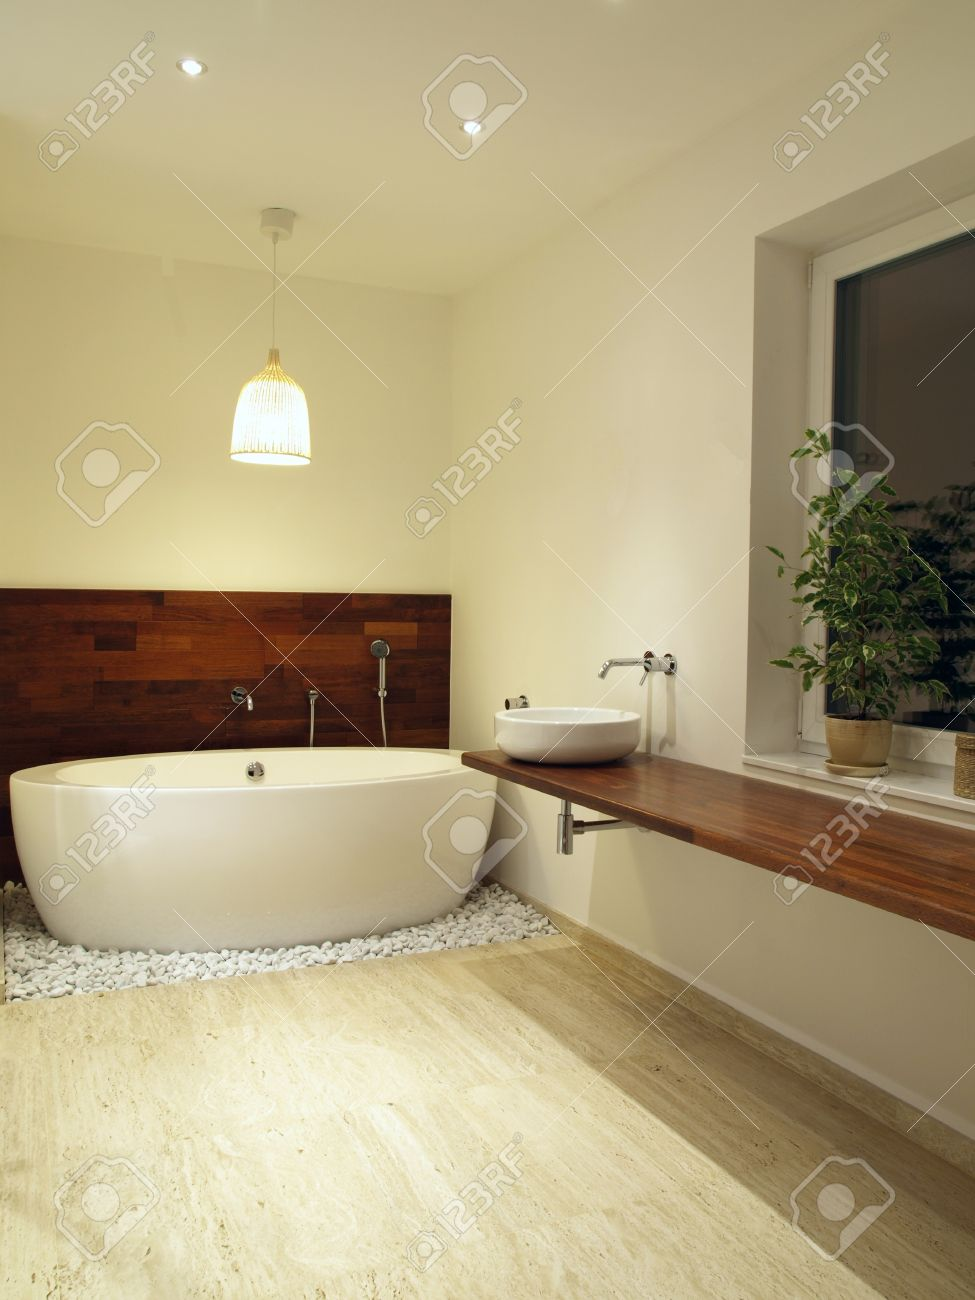 Sehr Indogate.com | Salle De Bain Travertin Photo WQ92